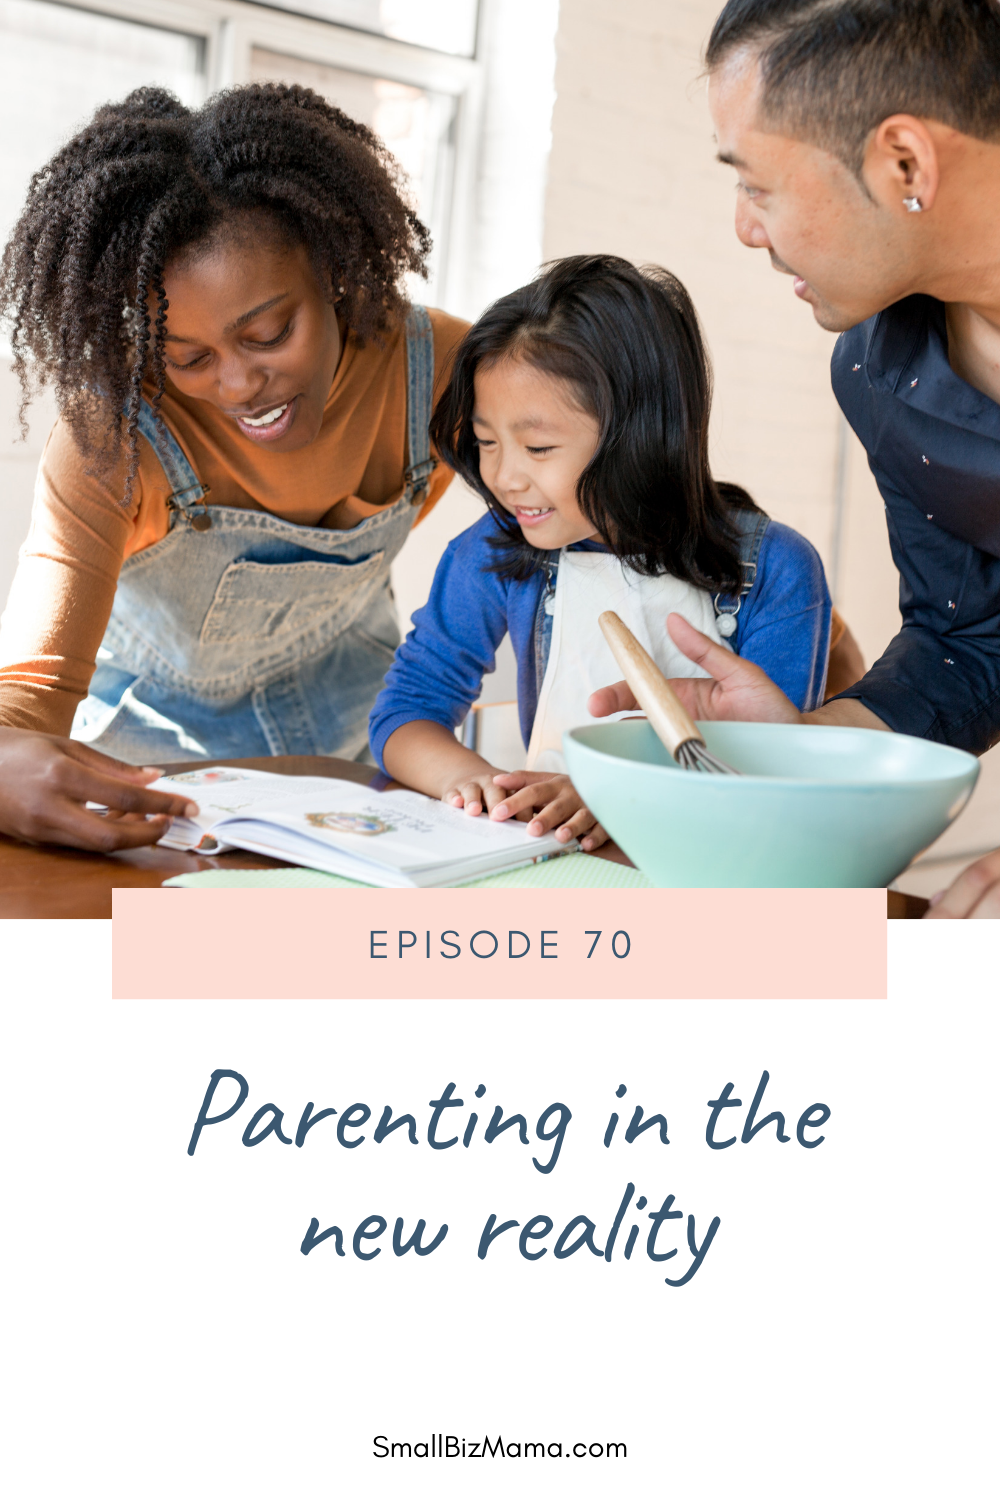 Episode 70 Parenting in the new reality